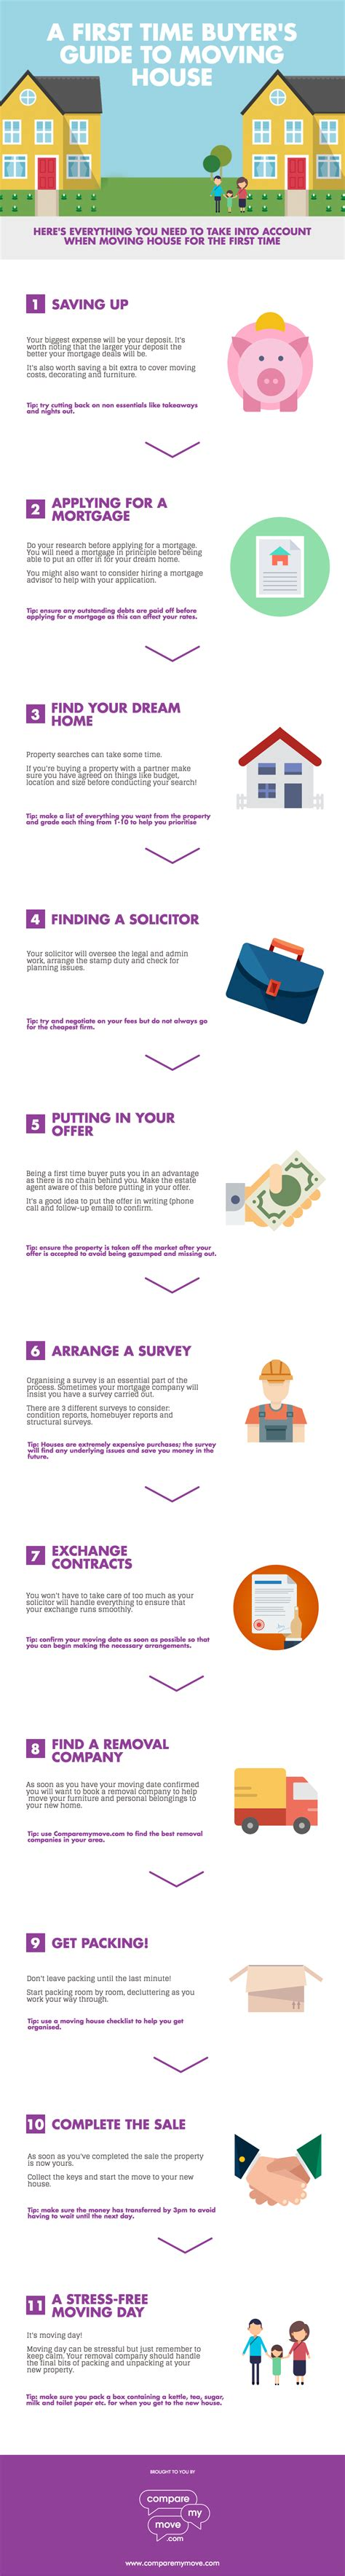 house buying tips uk house buying process uk timeline 28 images the letting process by foxtons estate